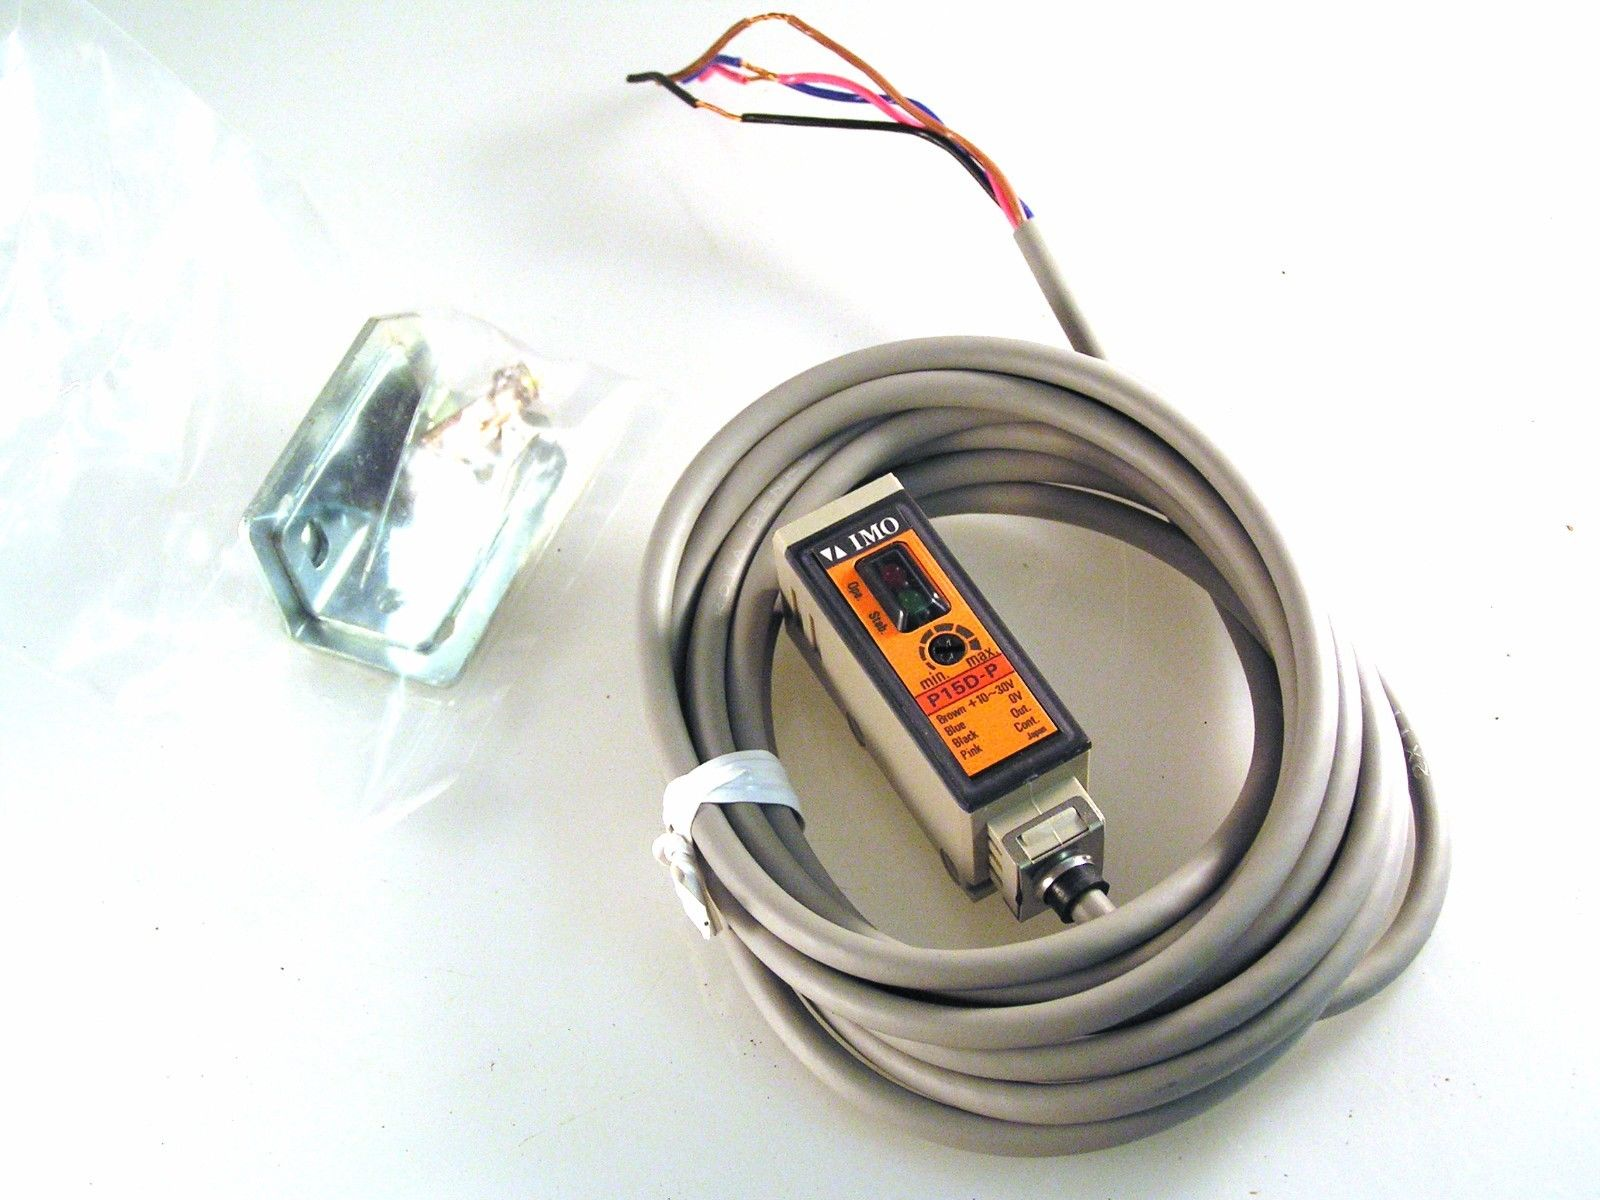 M18 IMO SS4//0P-0A Photo Electric Switch 10-30VDC Diffuse I211 MBB027d